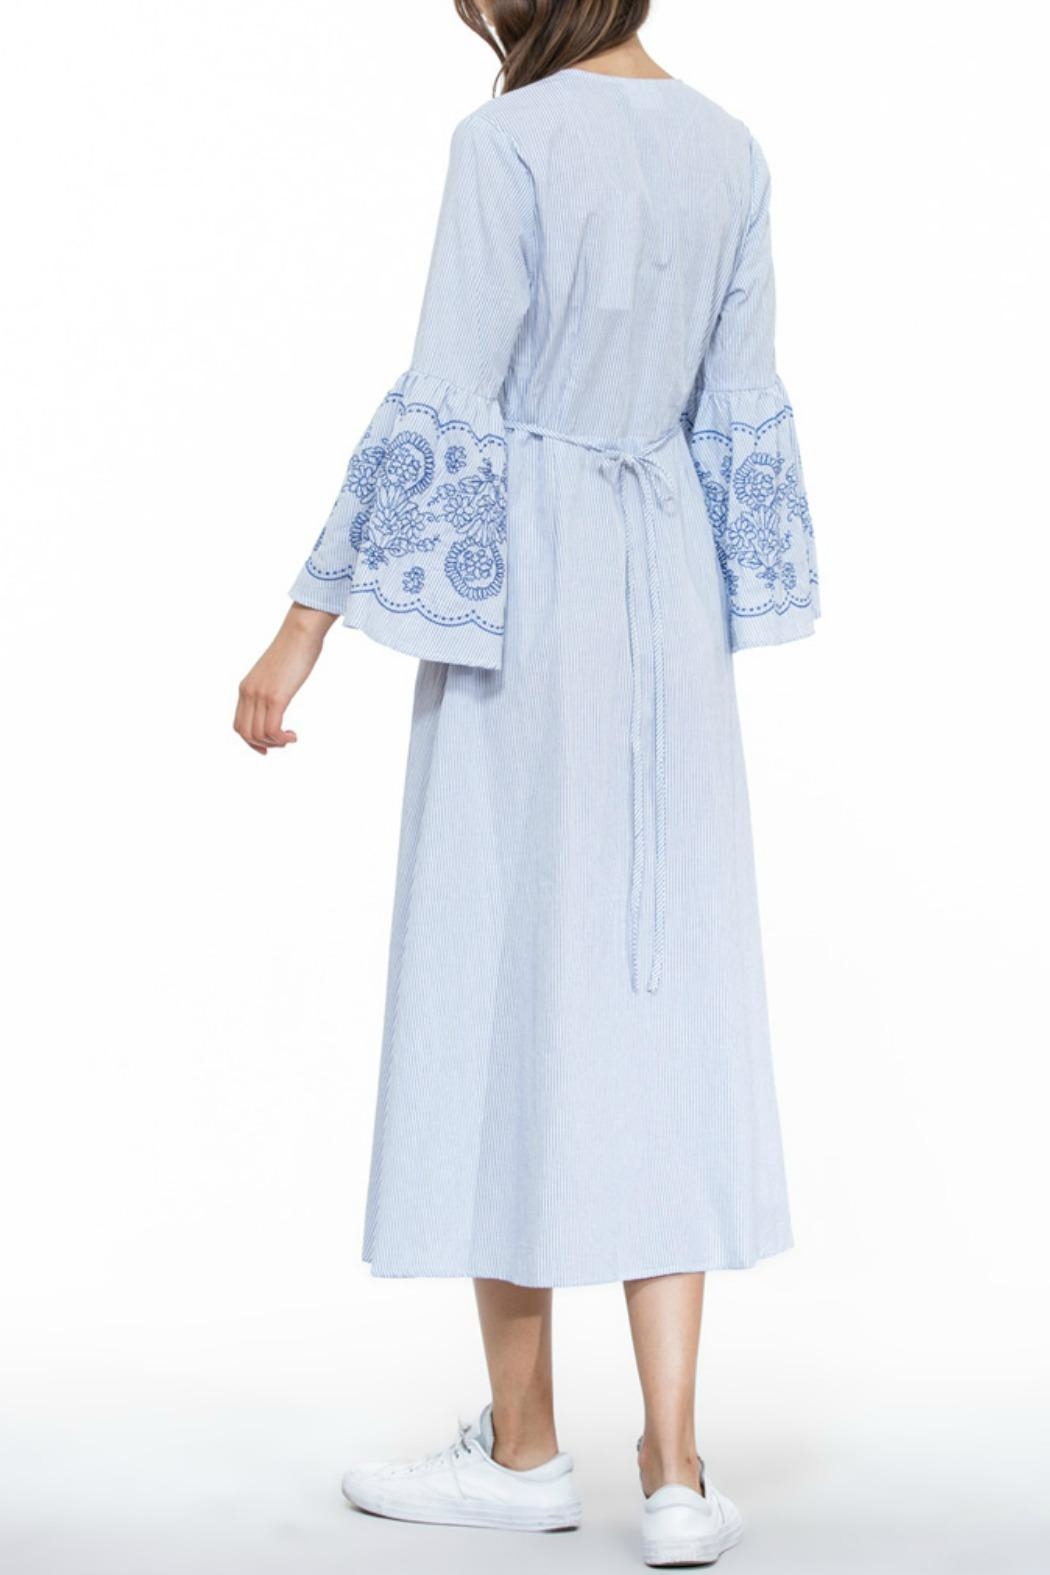 The Room Embroidered Wrap Dress - Side Cropped Image